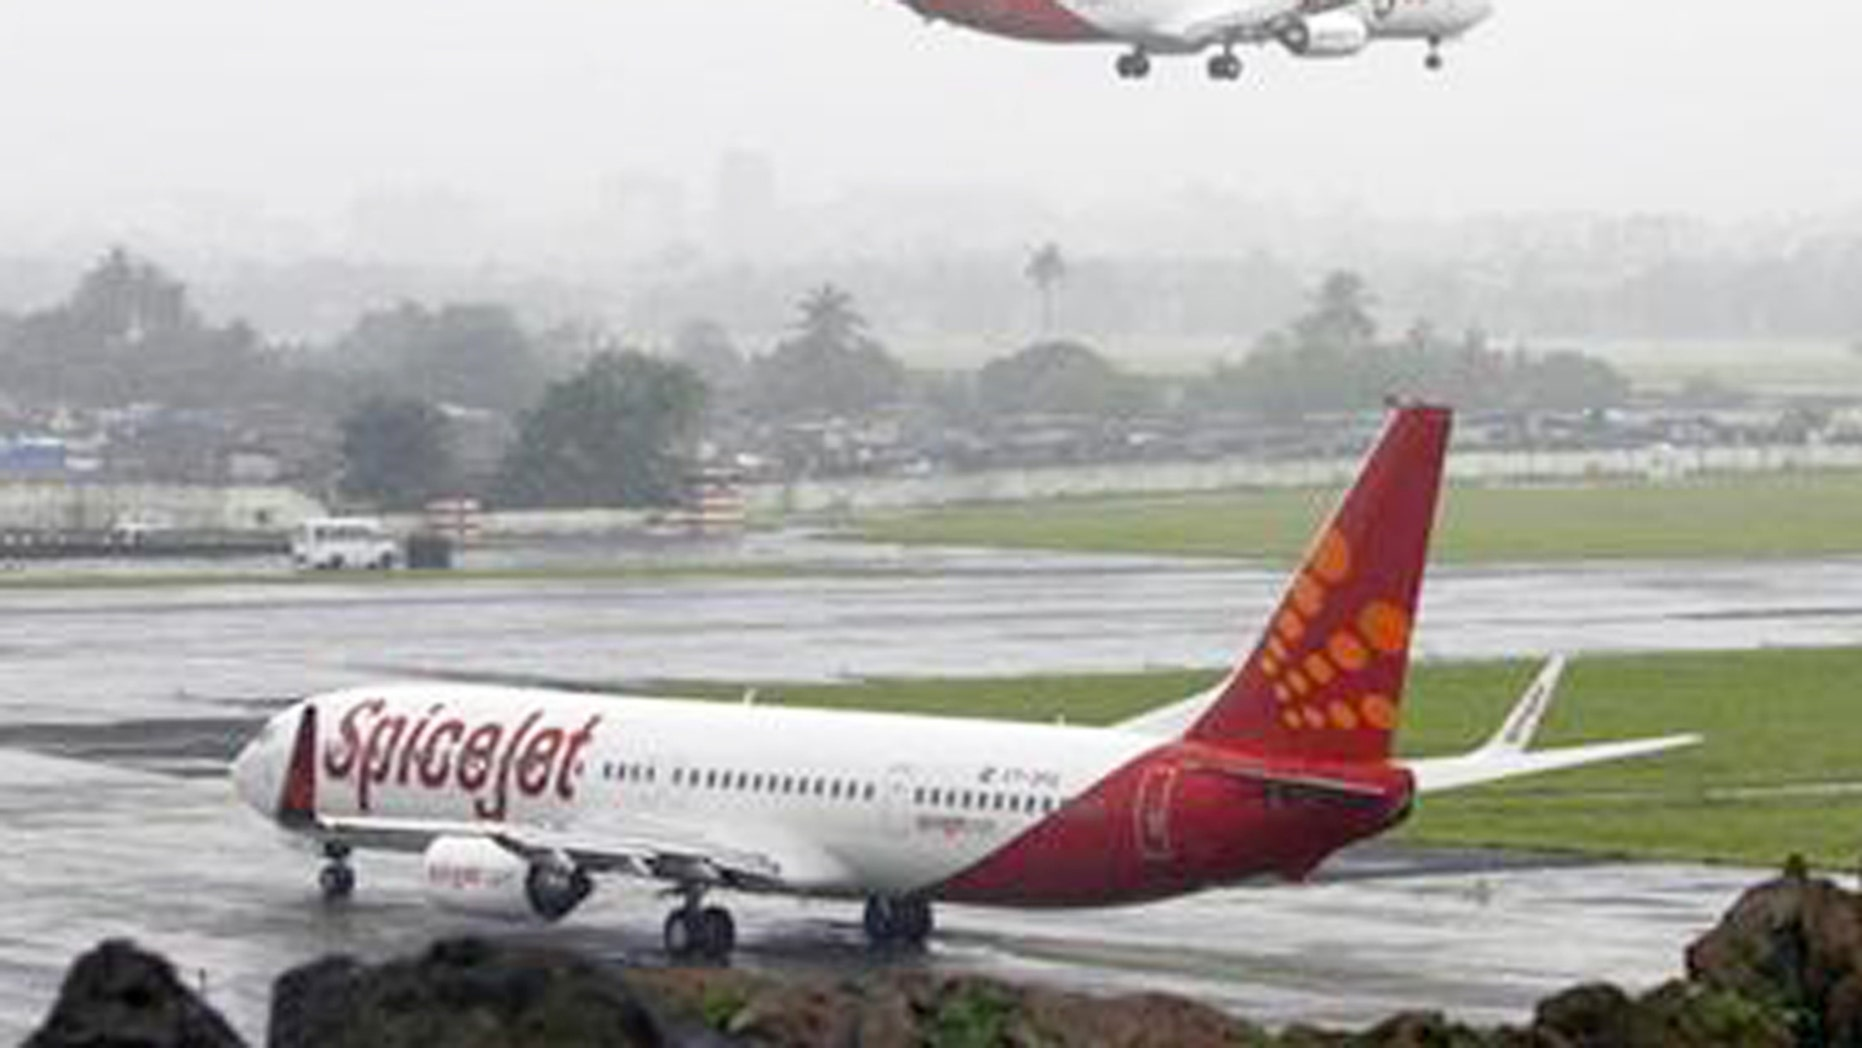 SpiceJet, a low cost carrier based in Gurgaon, India, is the country's fourth largest airline.